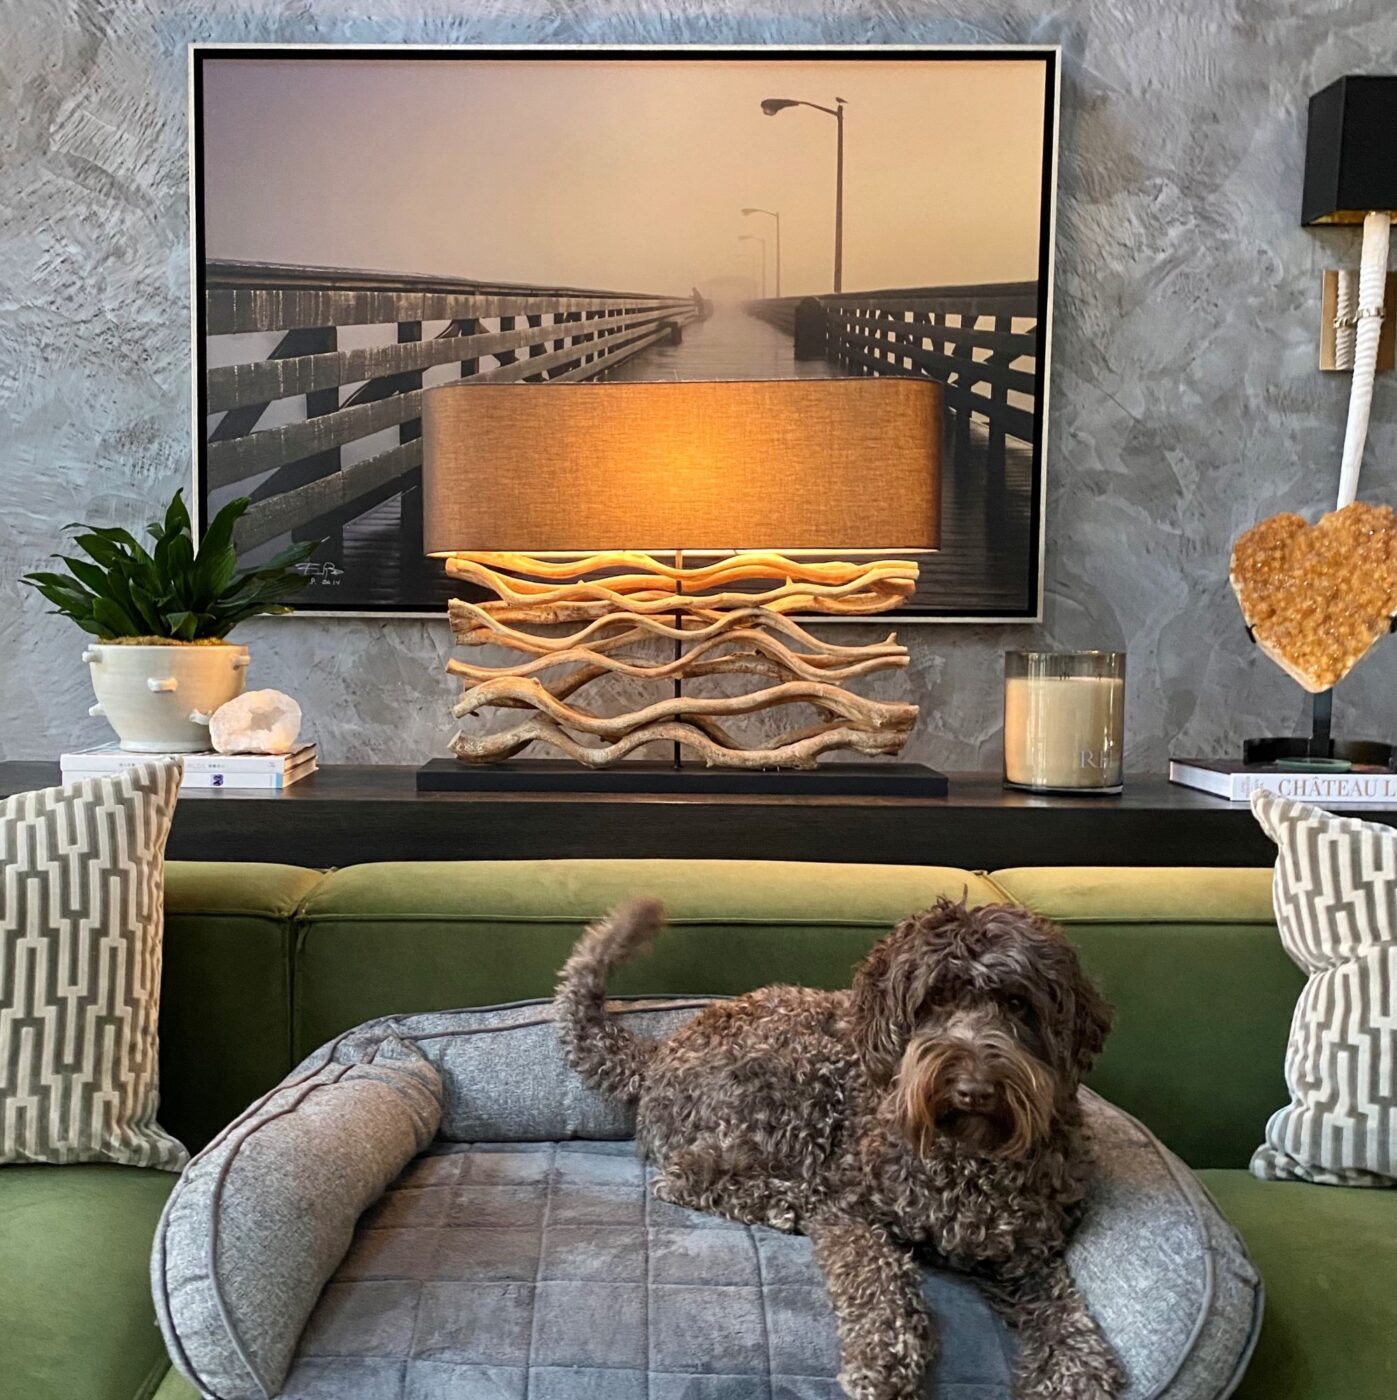 Decorating with Pets Made Simple